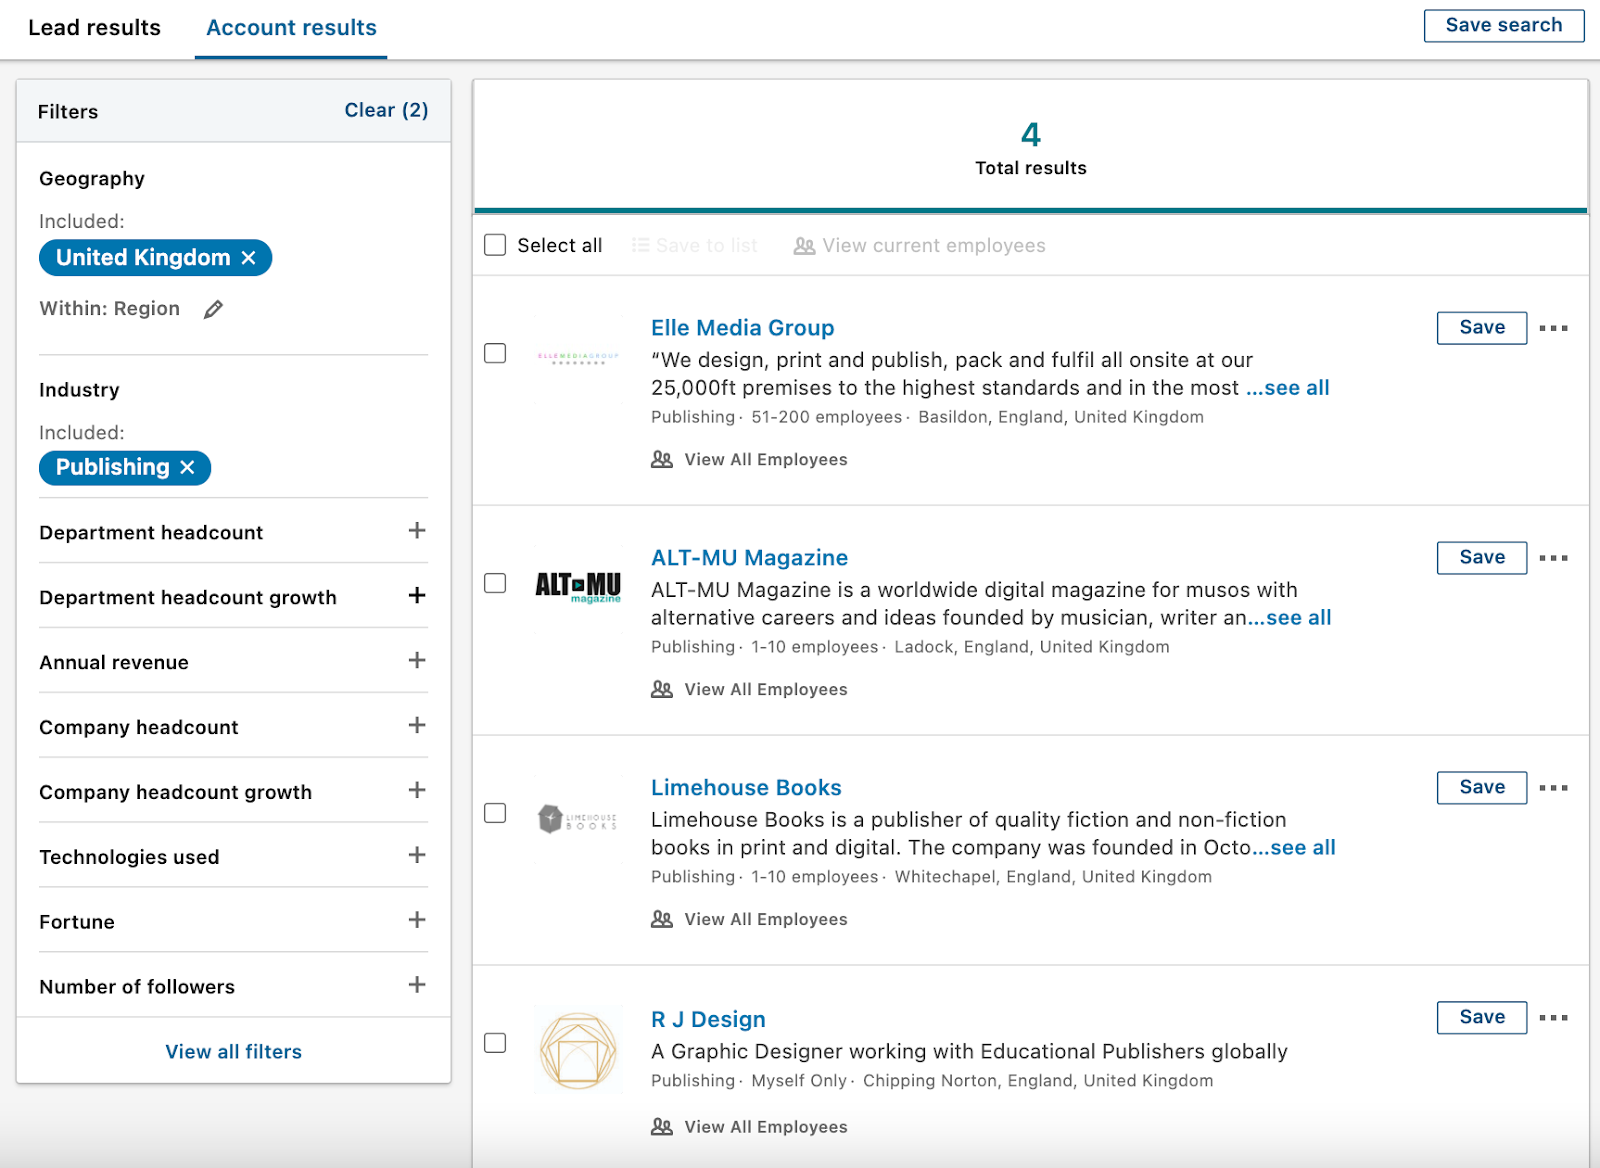 Account leads on LinkedIn Sales Navigator based on the previous search